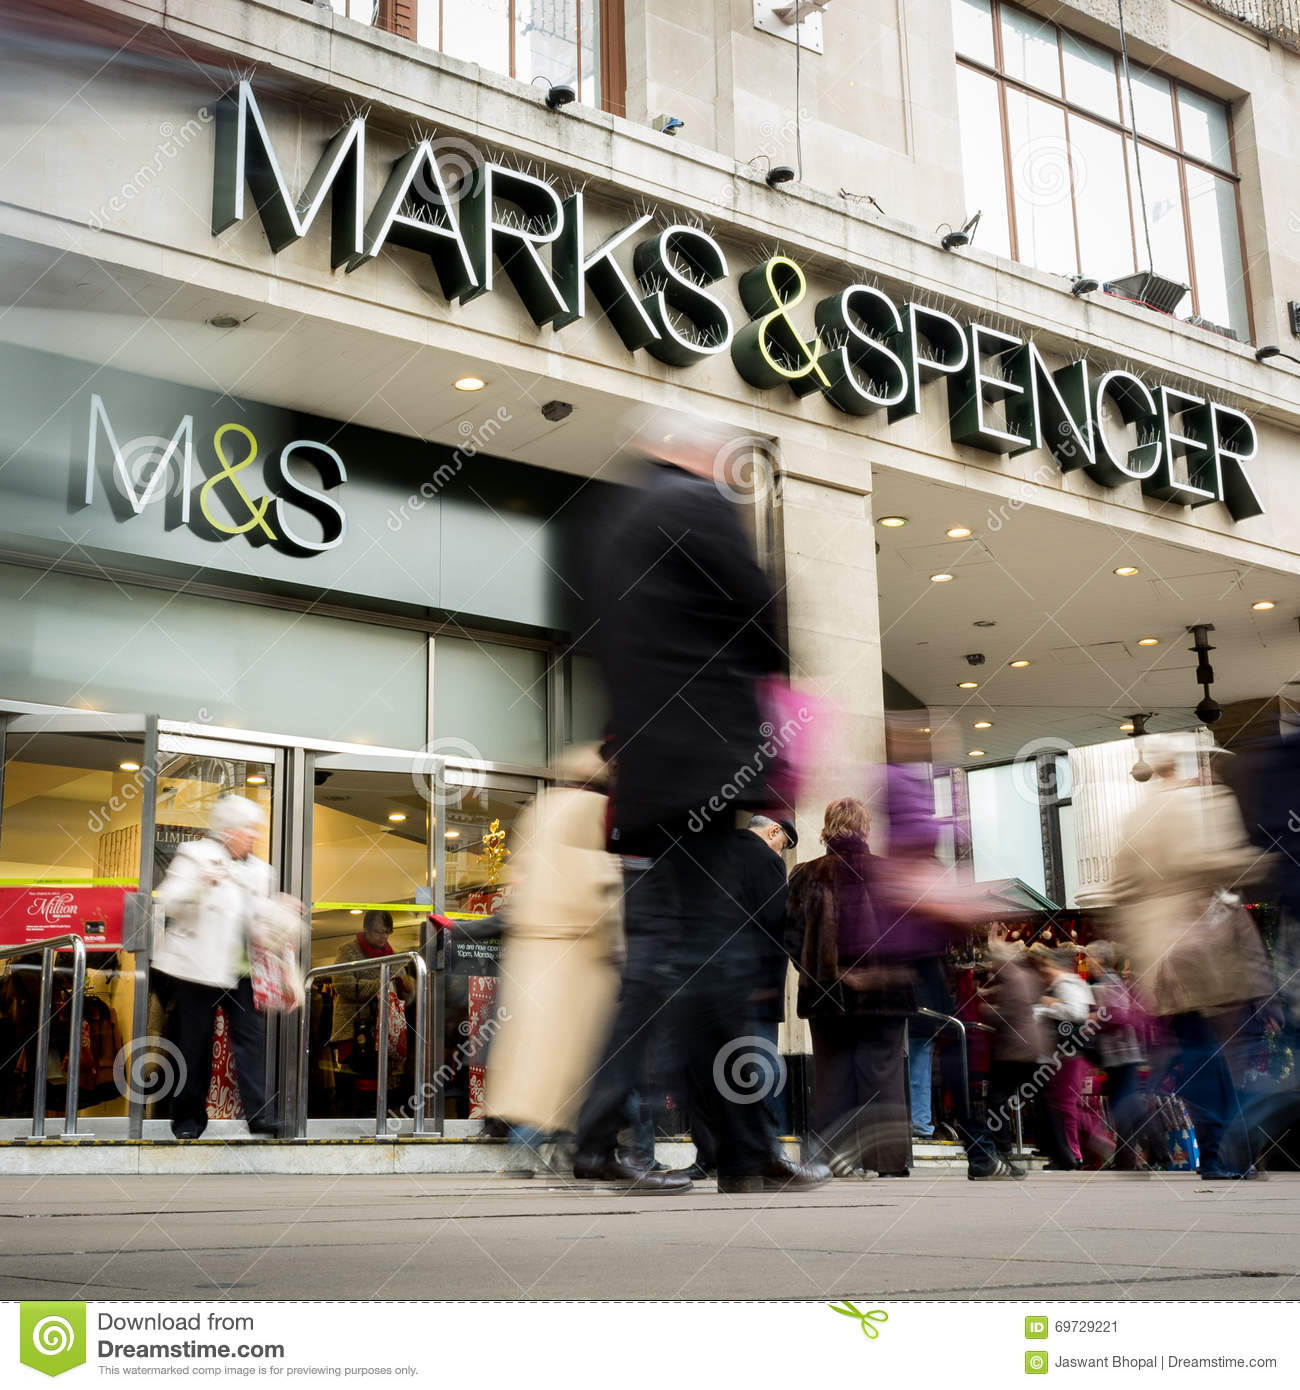 Marks & Spencer images